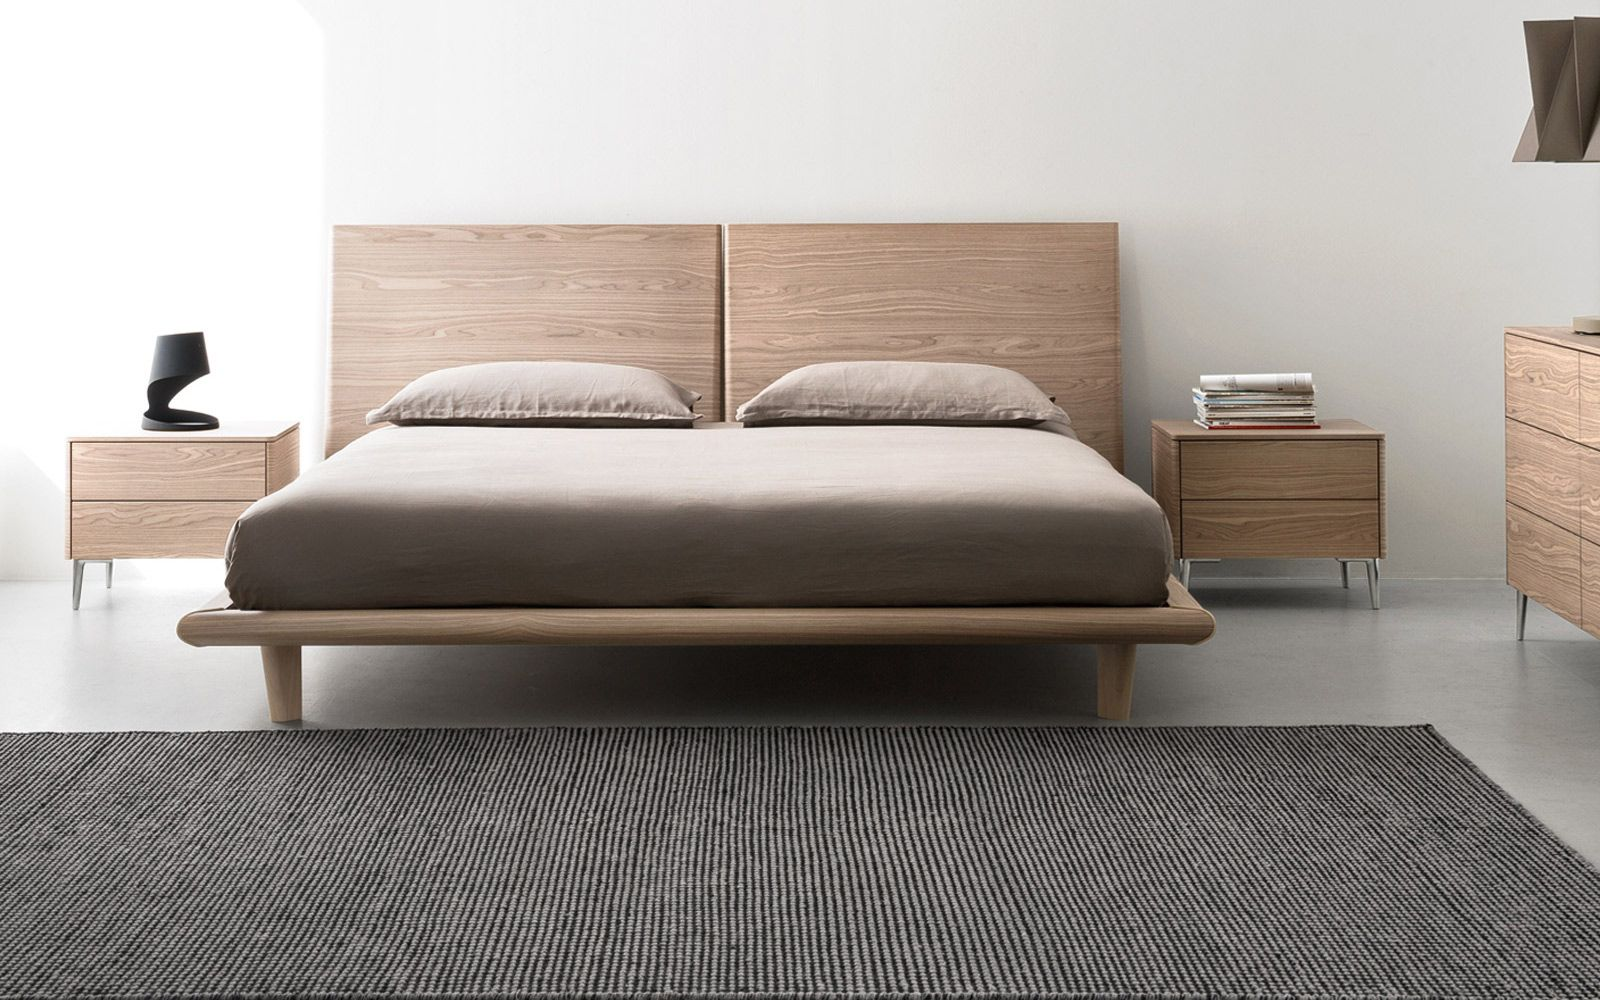 Wooden double bed SIERRA: queen-size. Calligaris CS/6045-Q